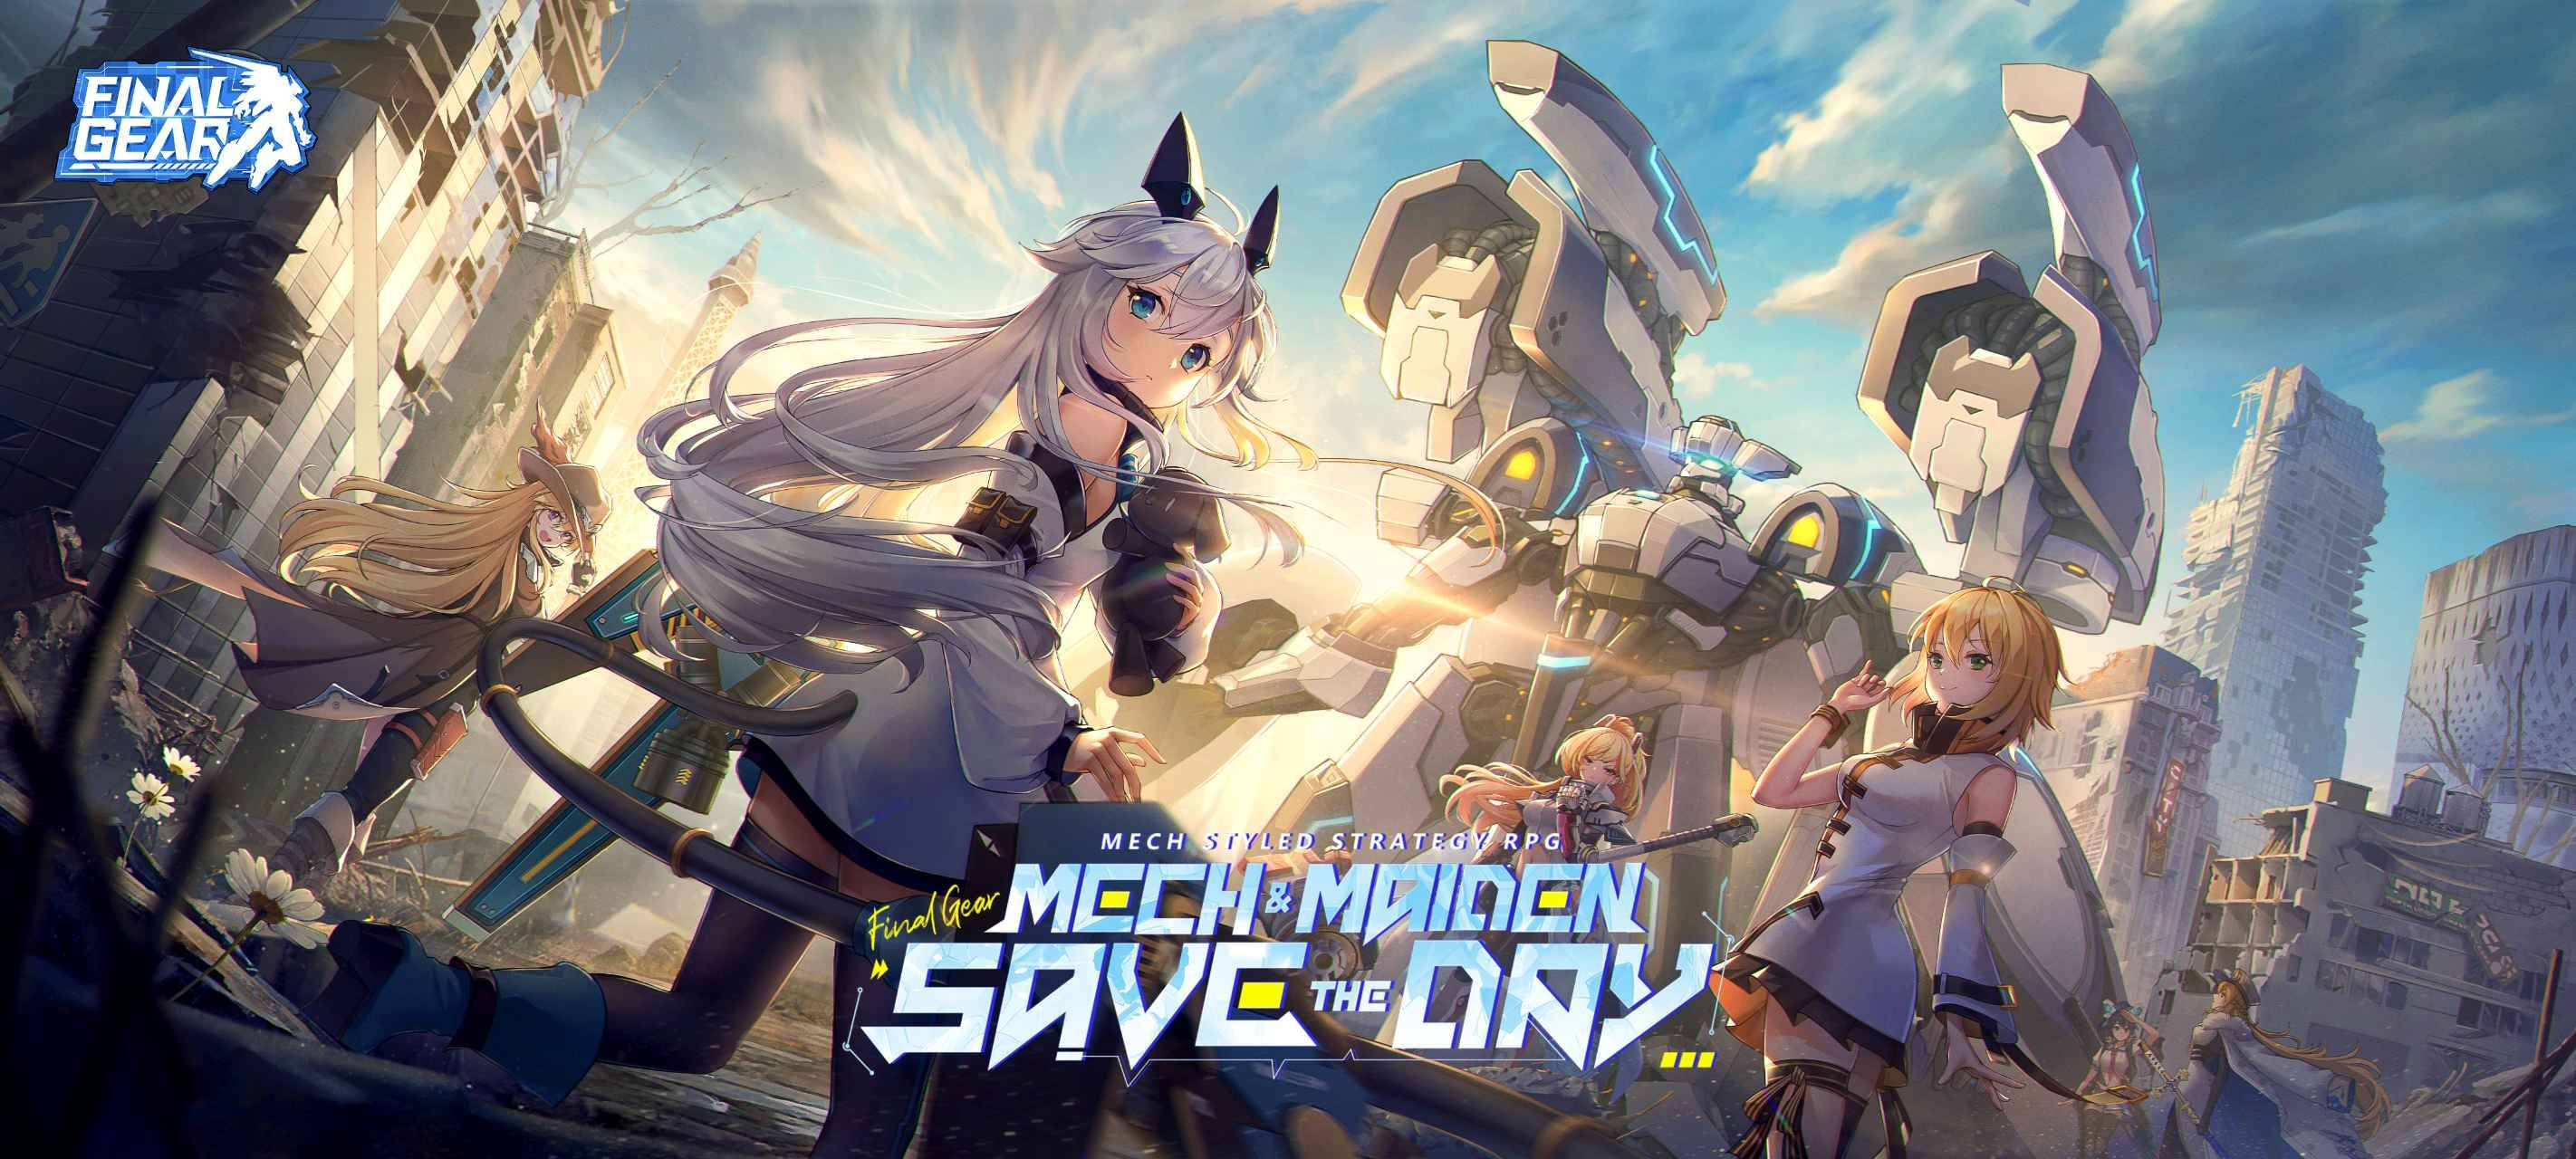 Best Mech-Style Strategy RPG Ever: Final Gear Launching Globally on Sep. 30!